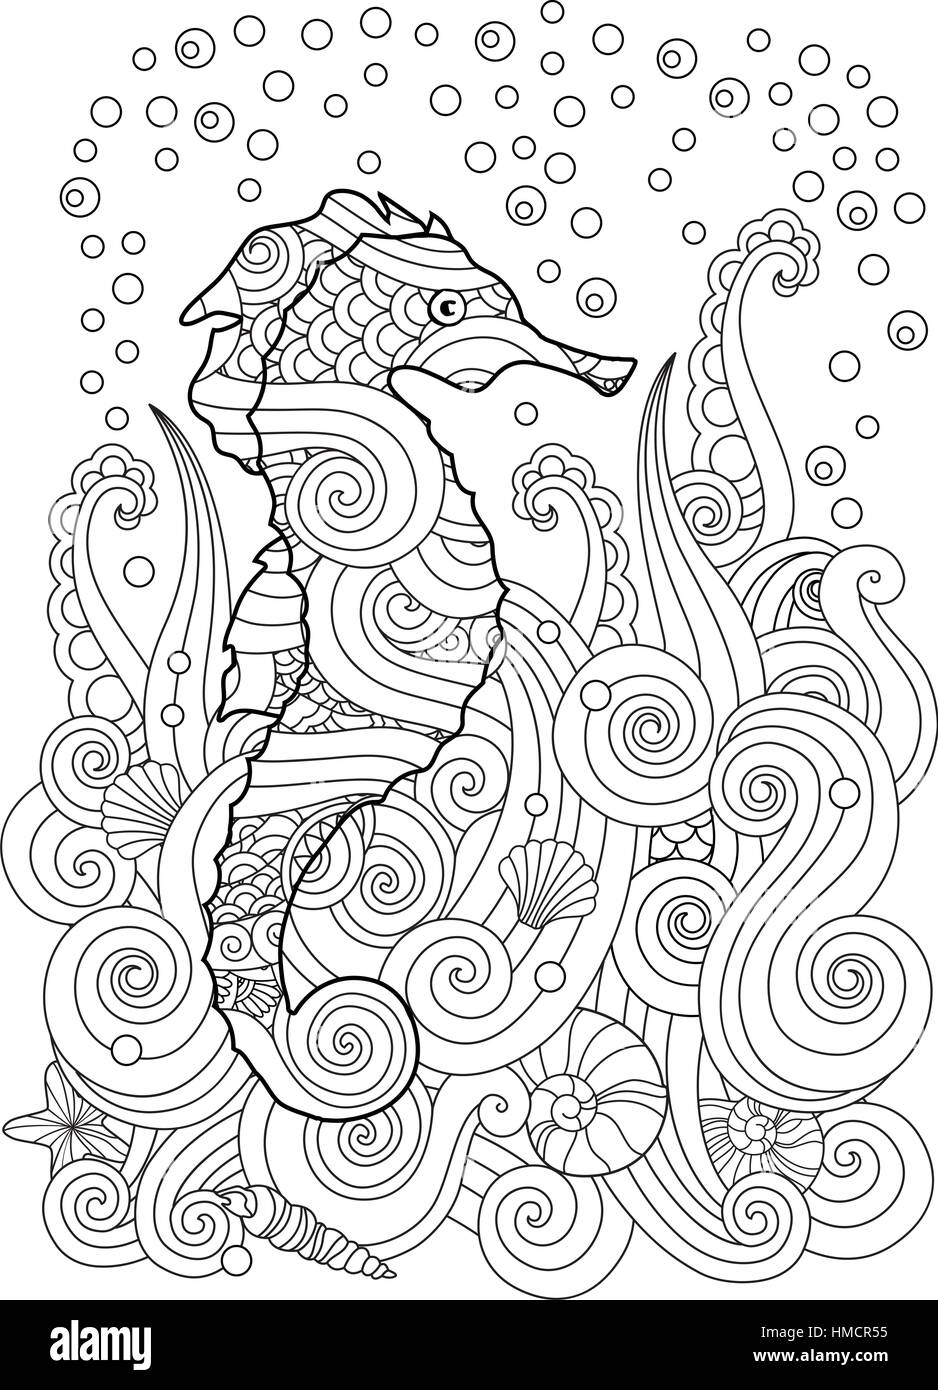 Hand Drawn Sketch Of Seahorse Under The Sea In Zentangle